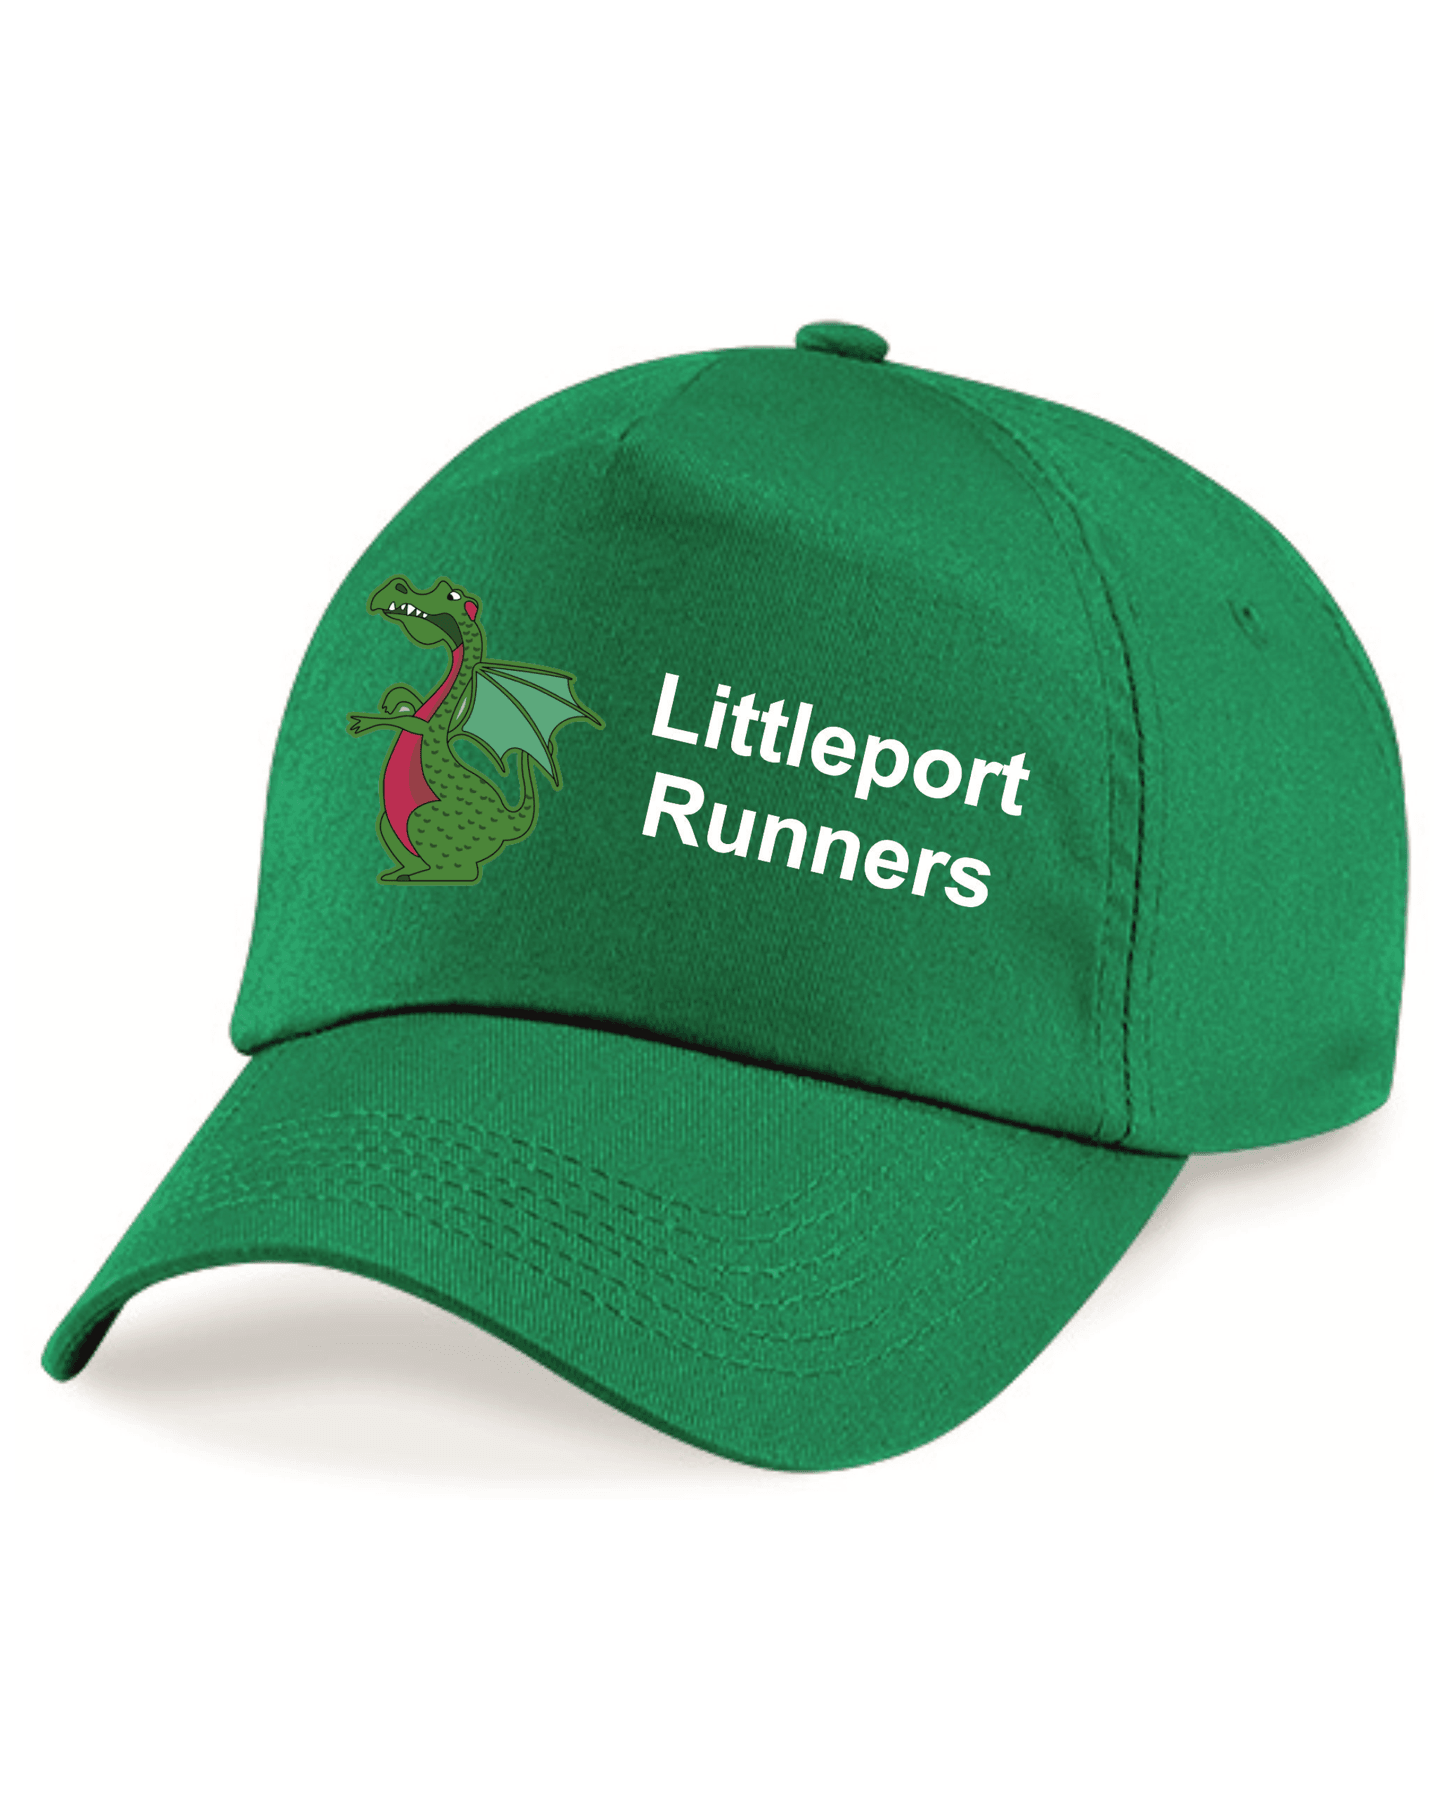 Littleport Runners – Baseball Cap